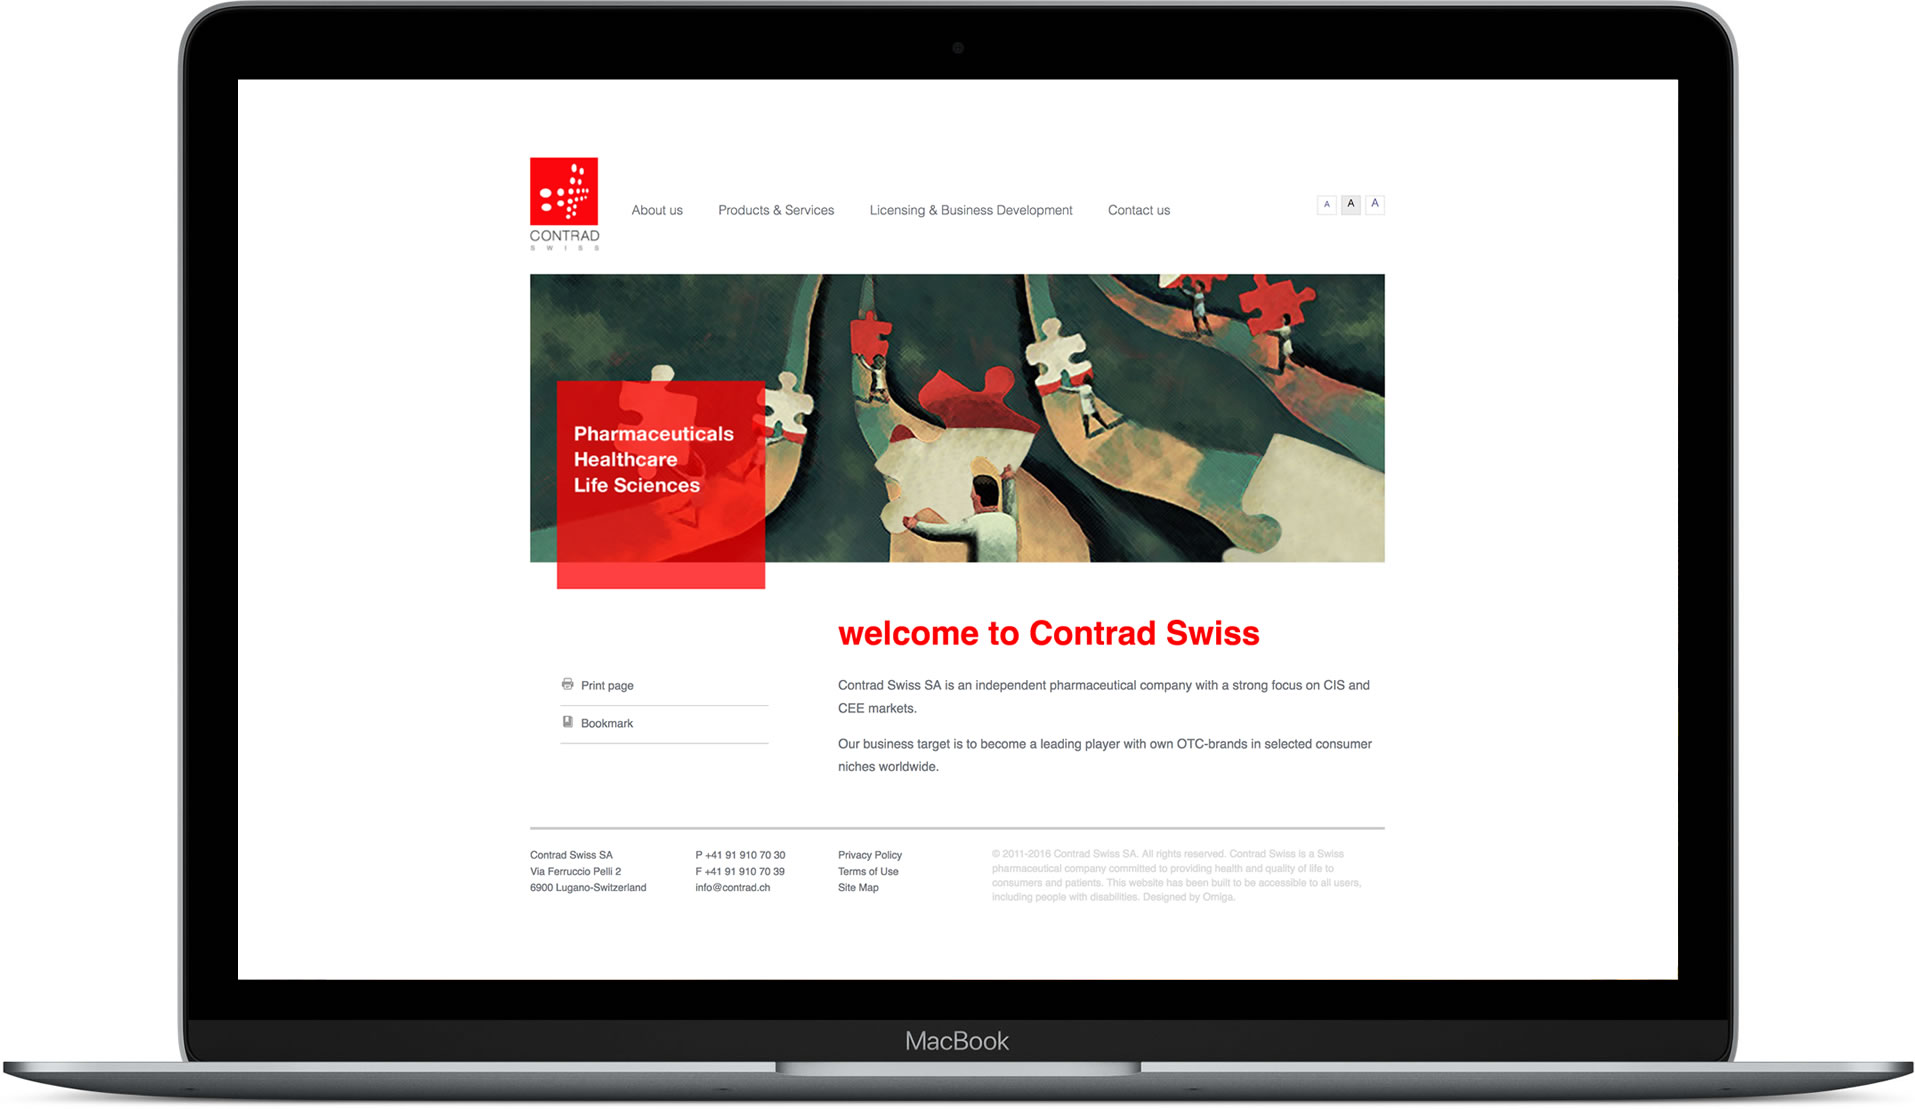 Website designed for Contrad mocked up in MacBook